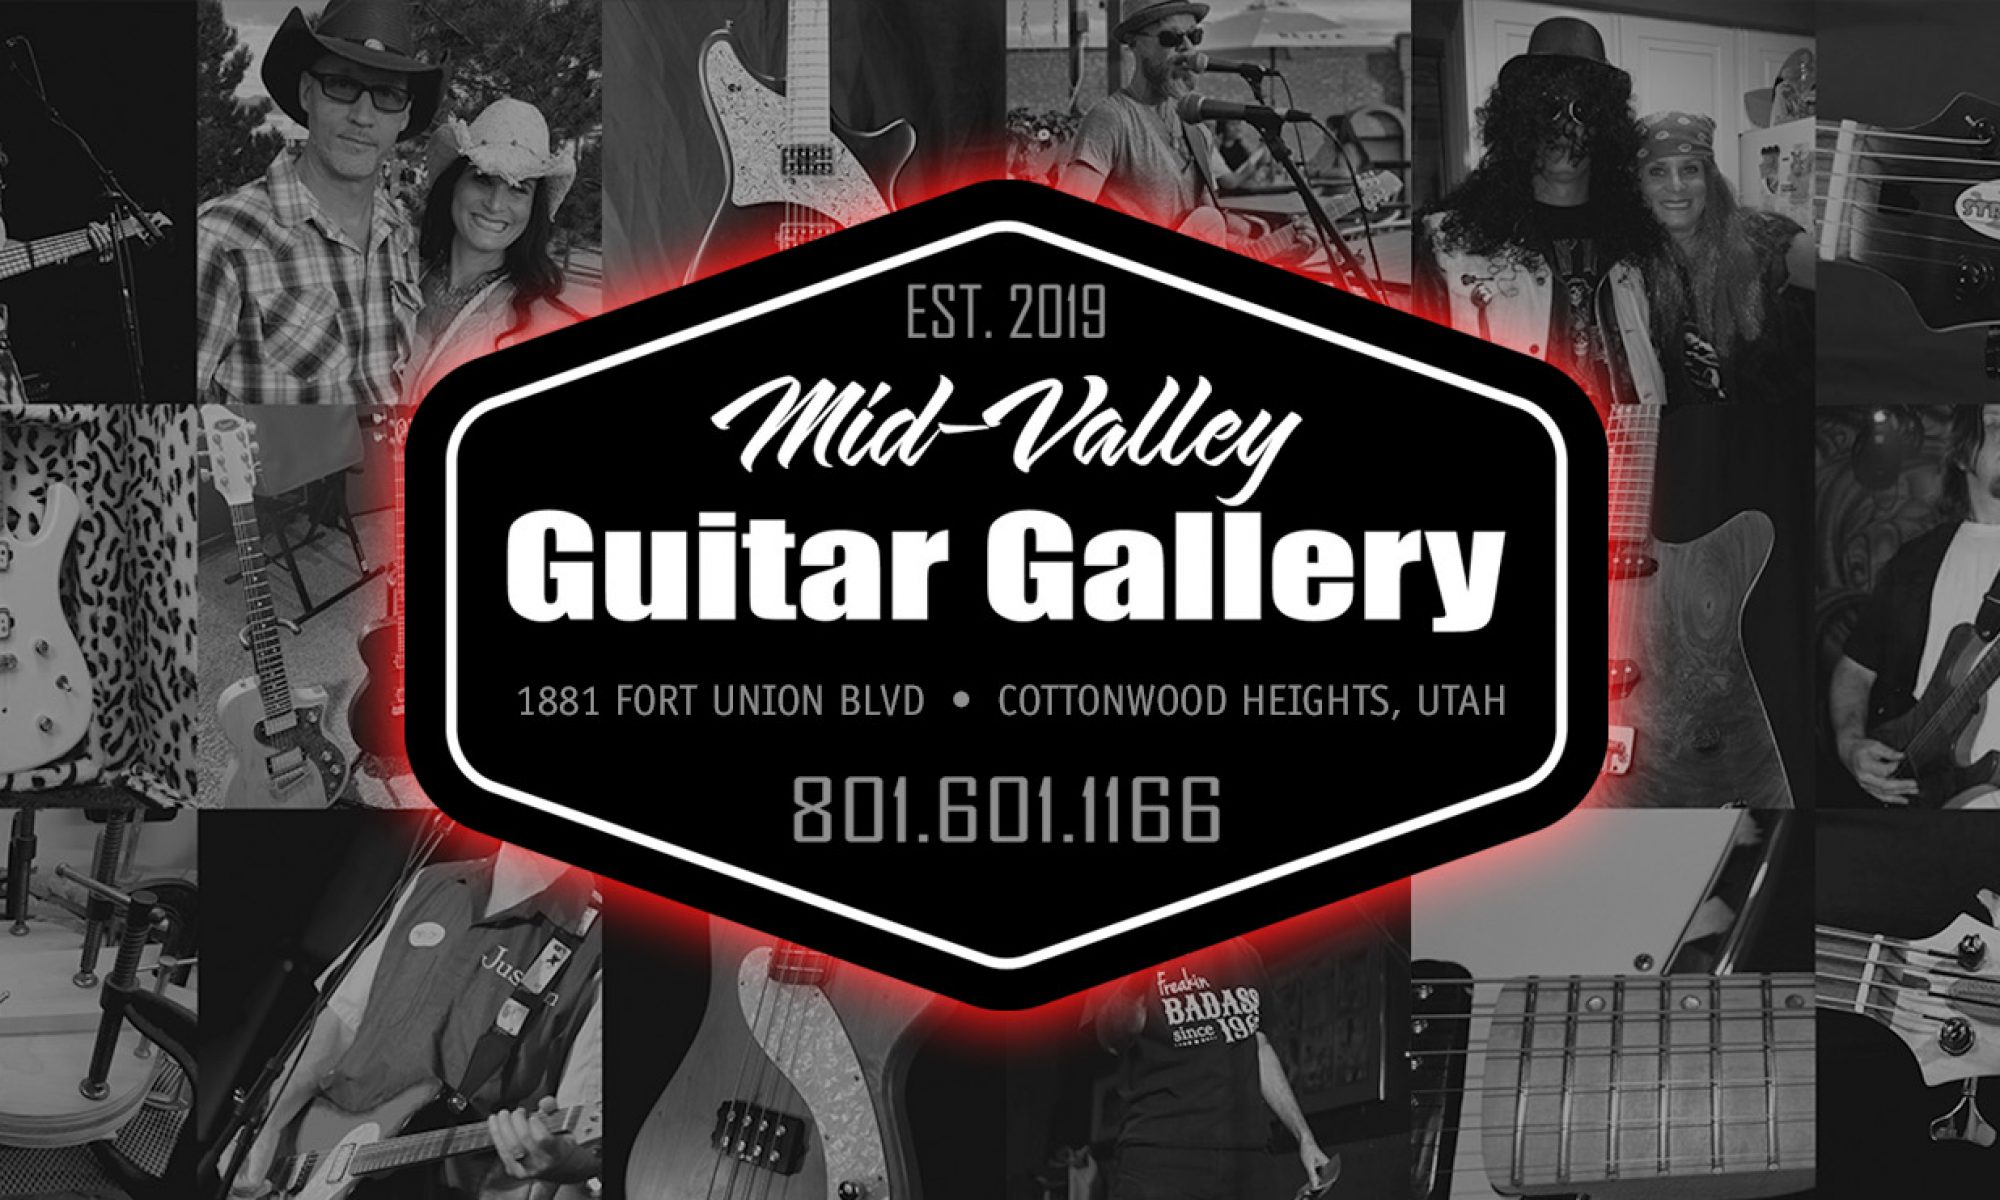 Mid-Valley Guitar Gallery